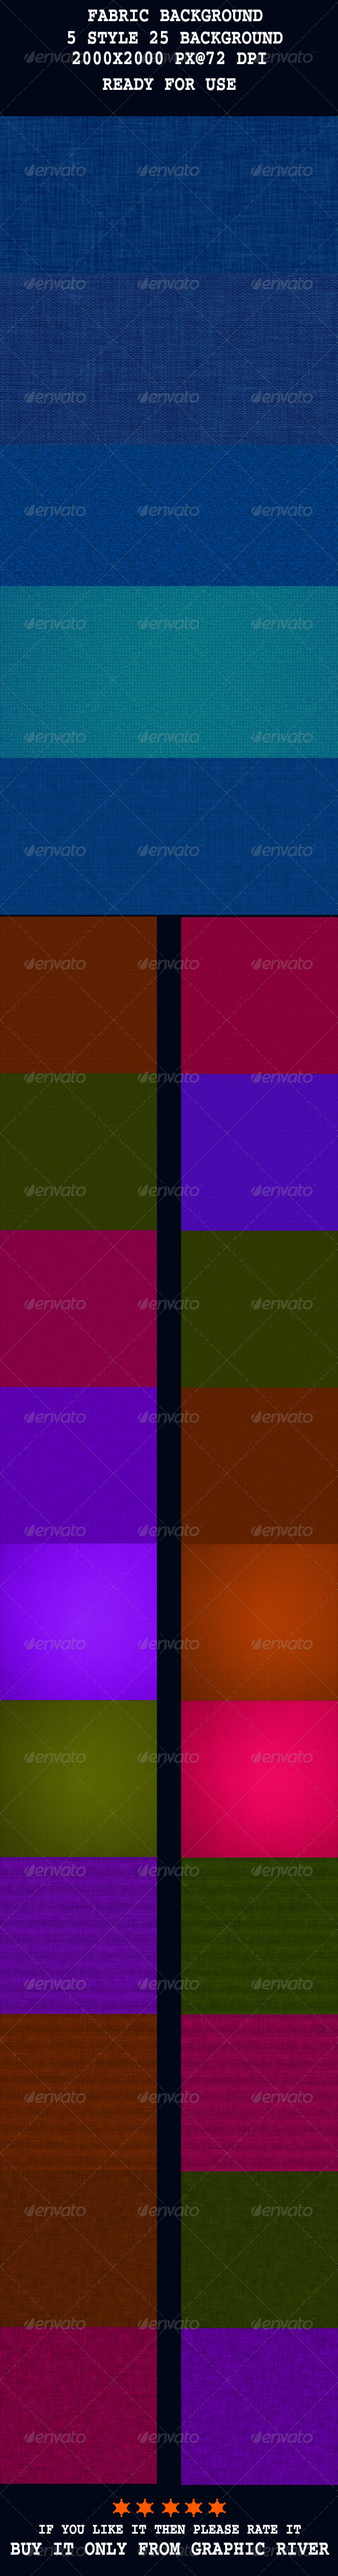 GraphicRiver Fabric Background 4248667